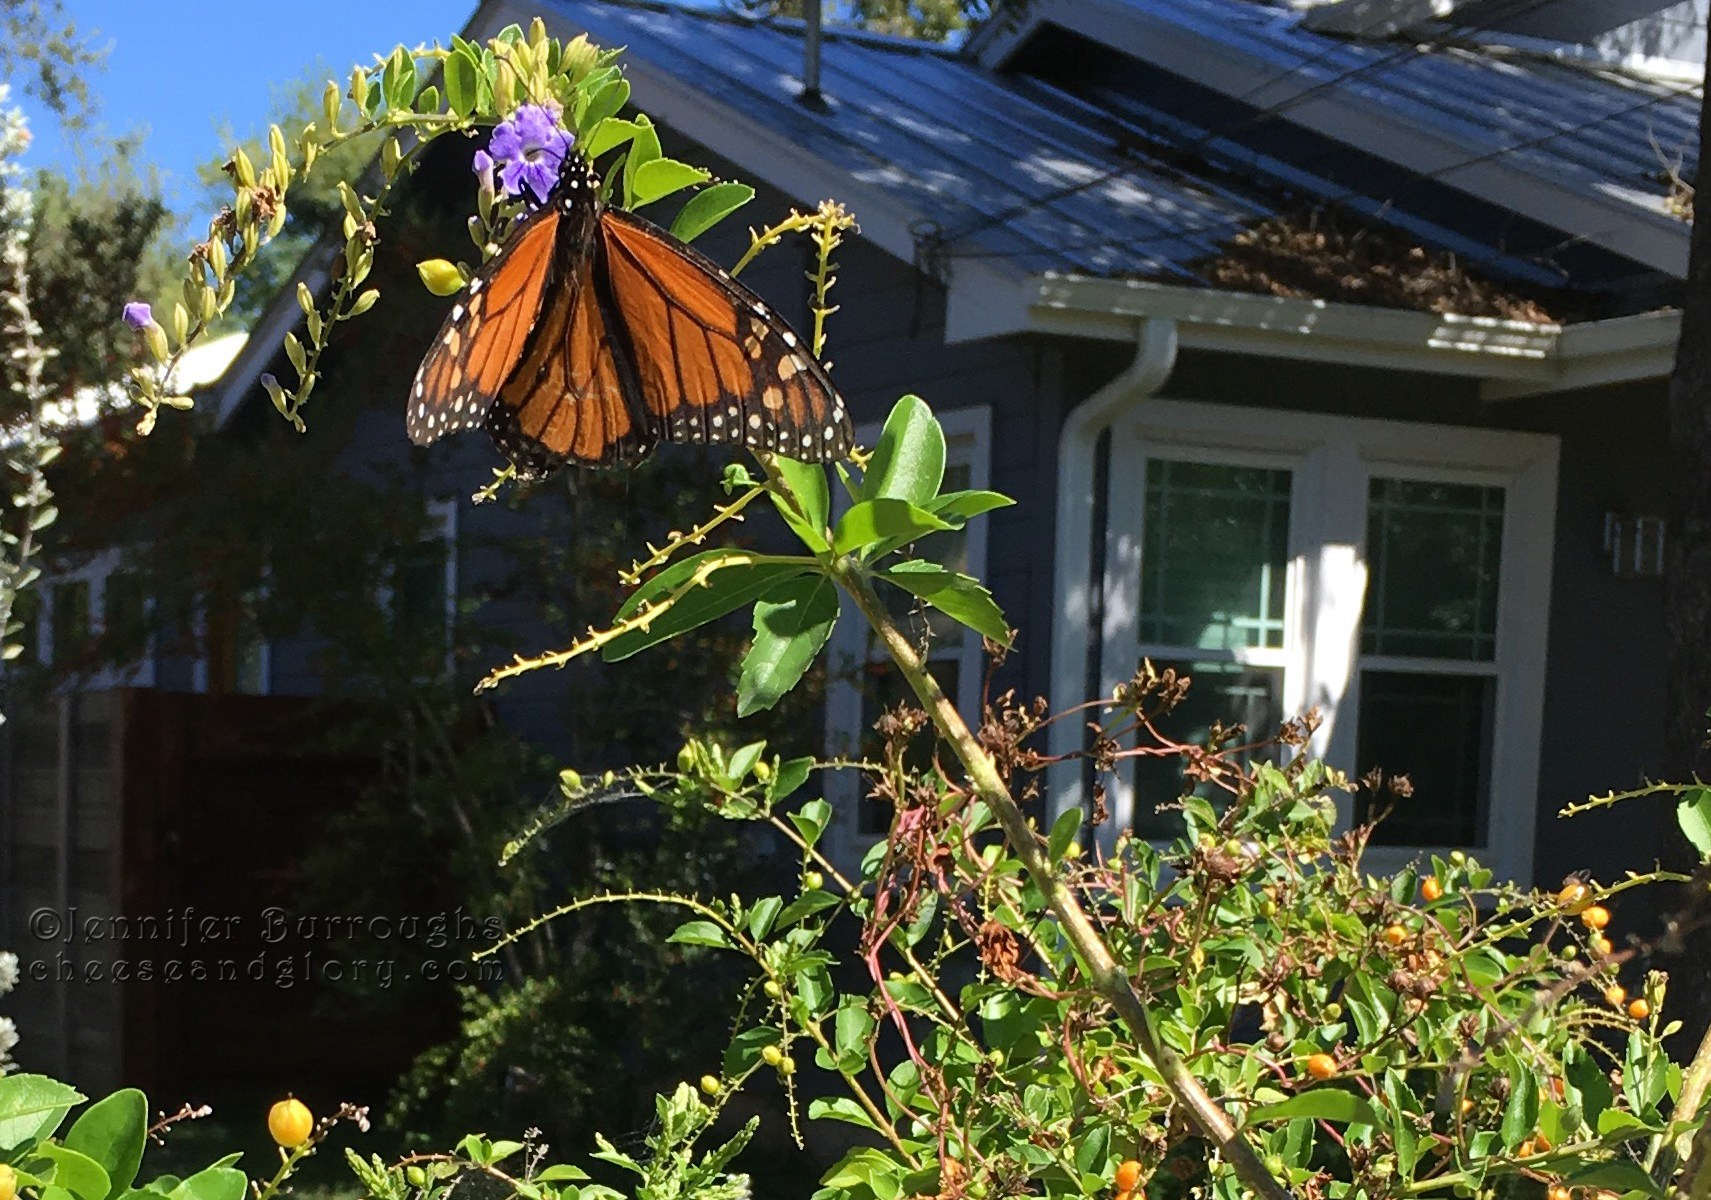 monarch butterfly on flowers - jenn burroughs - cheeseandglory.com